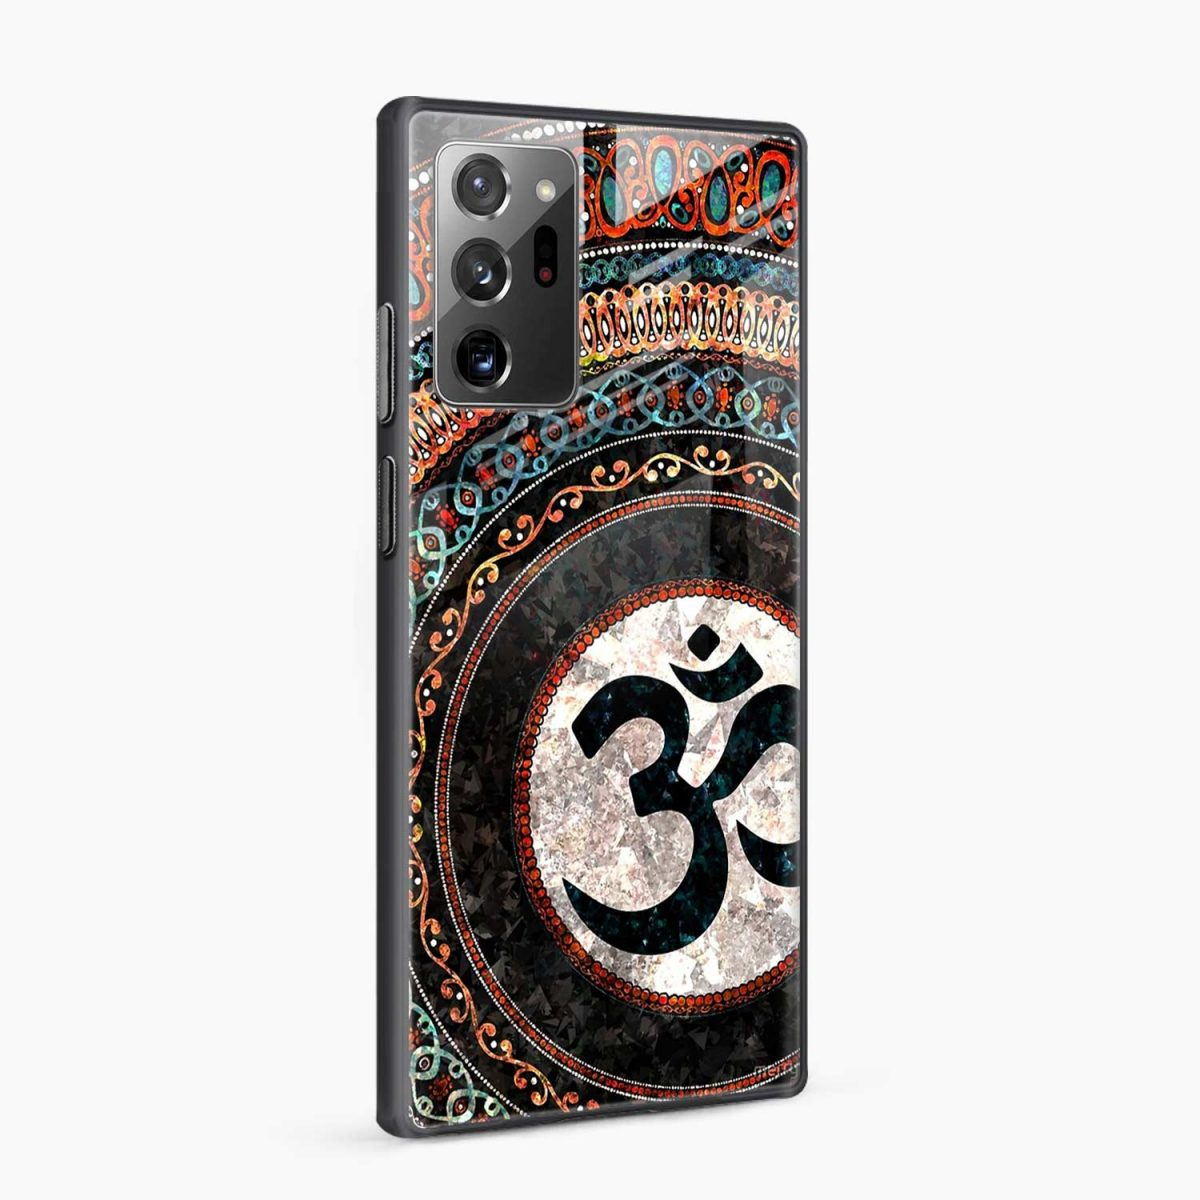 om glass side view samsung galaxy note20 ultra back cover